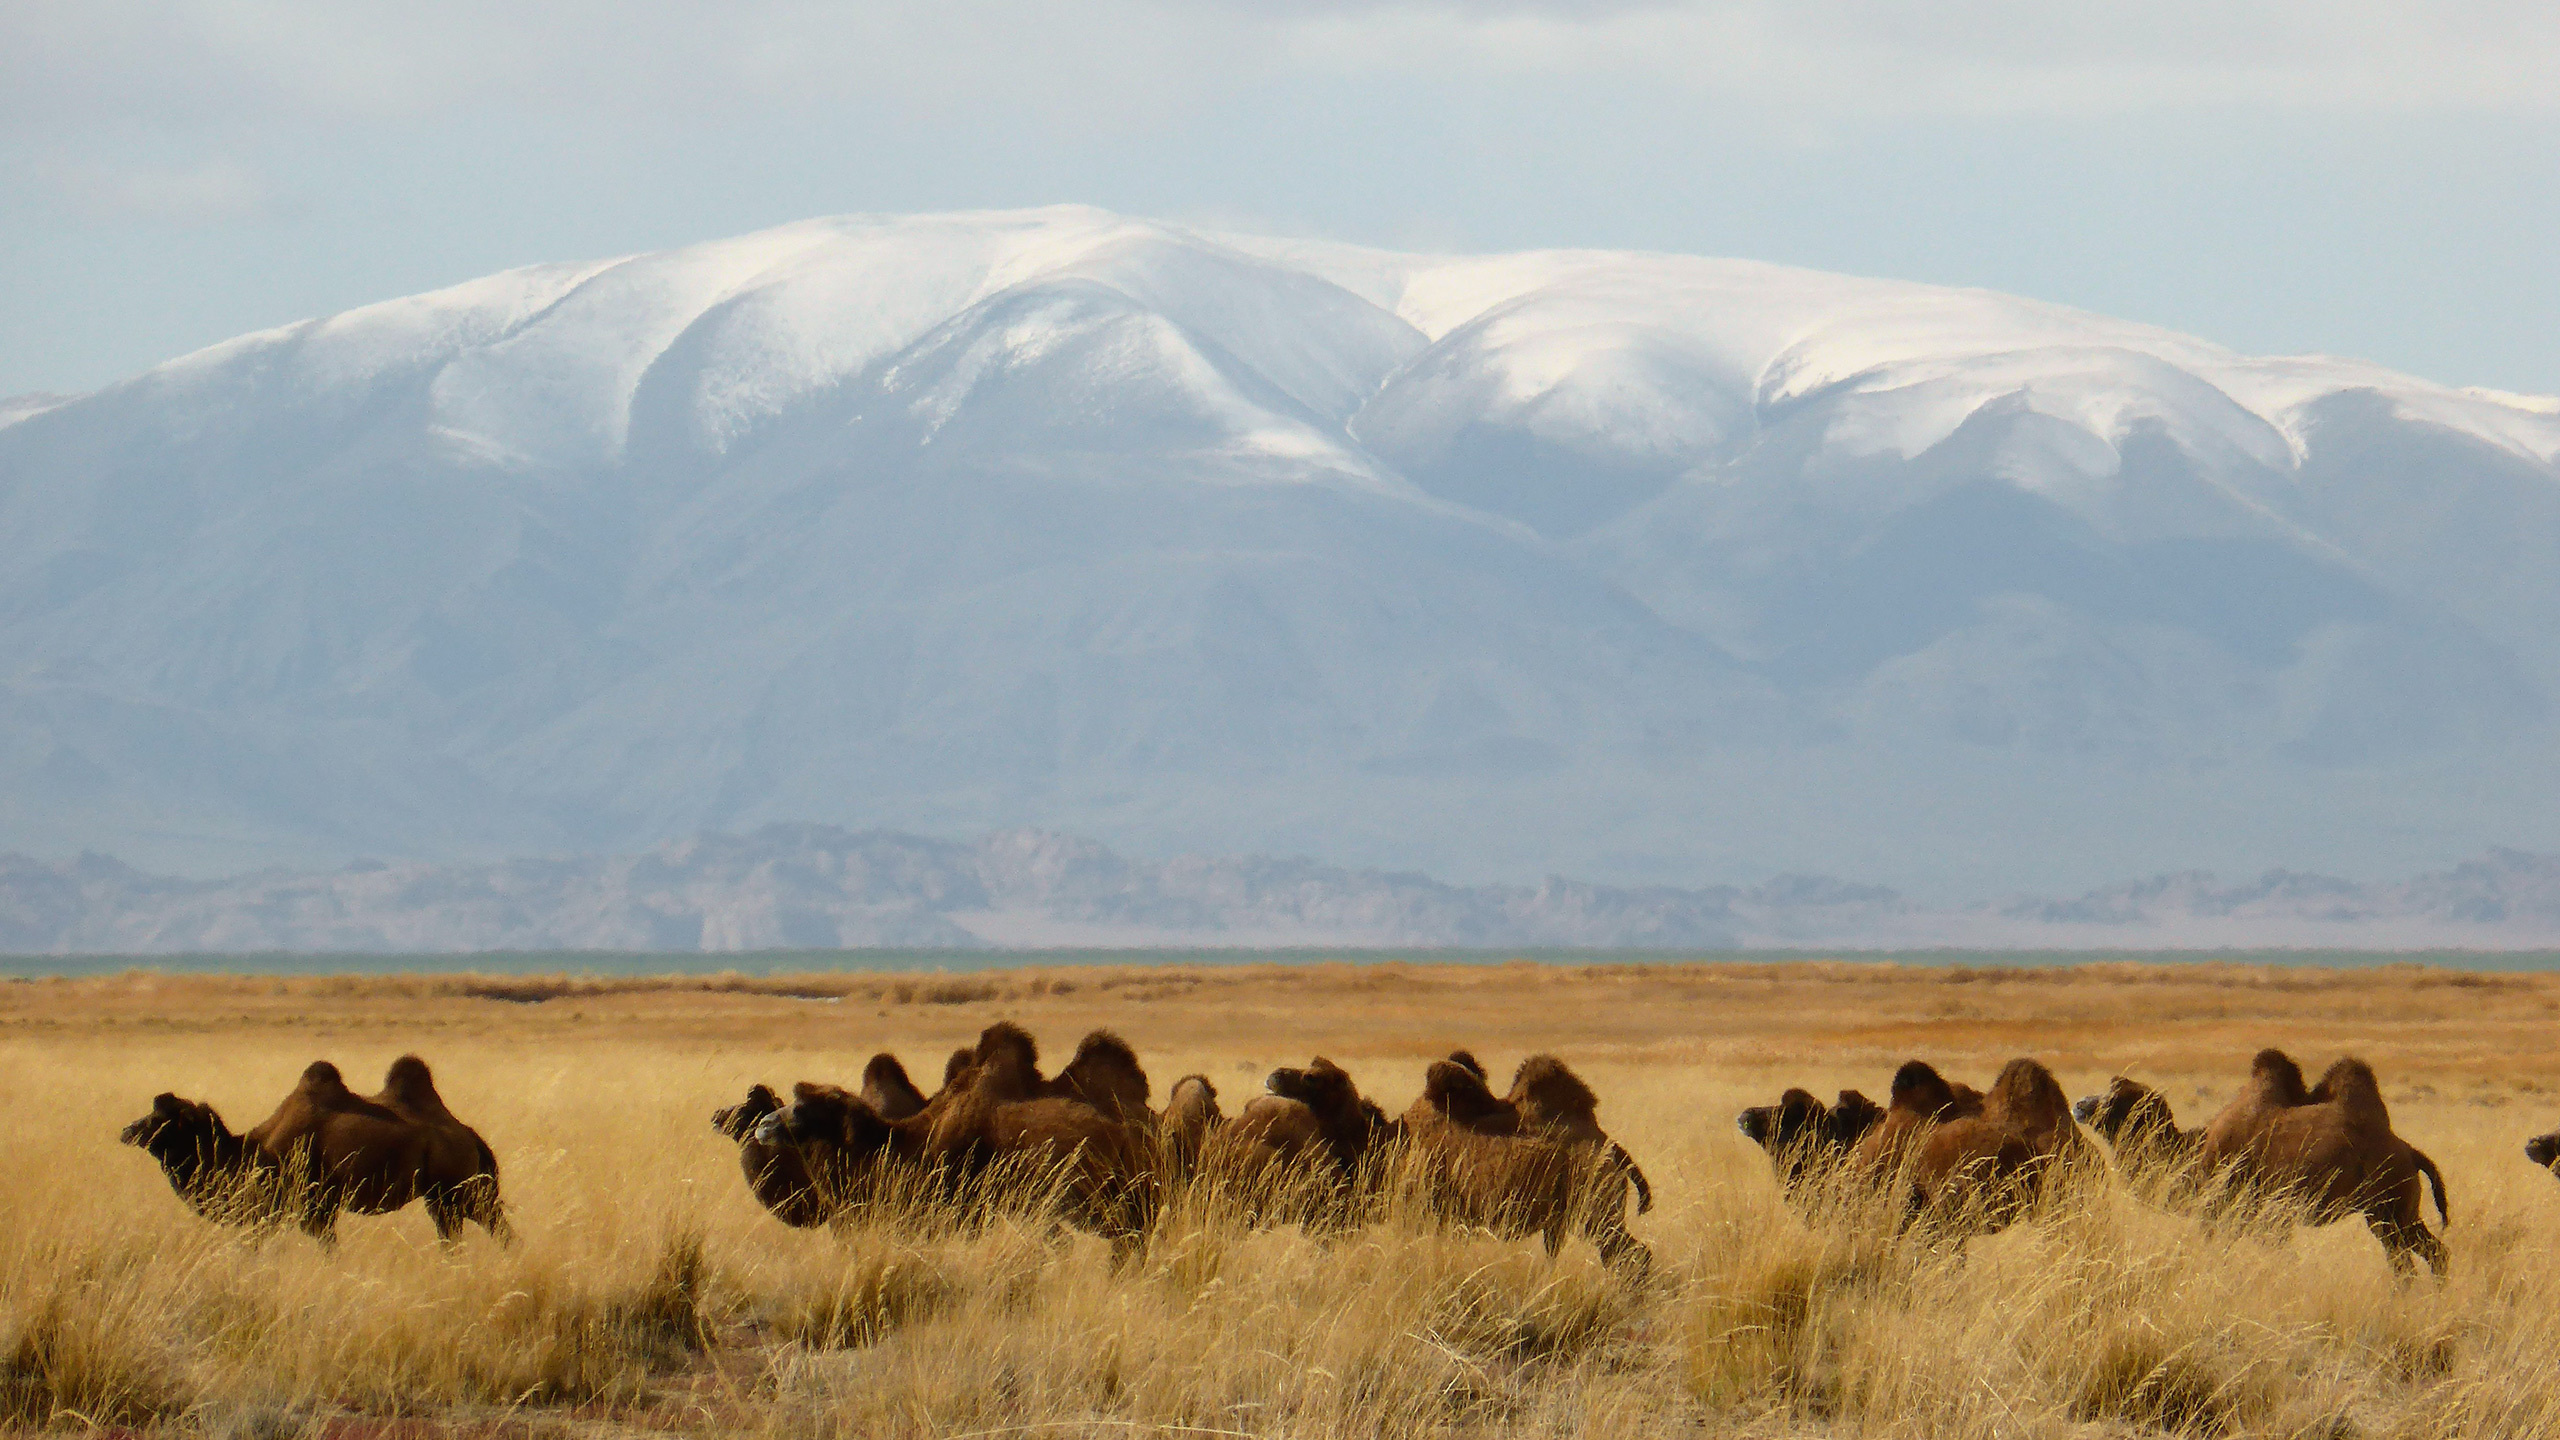 autumn pastures in Mongolia with camels